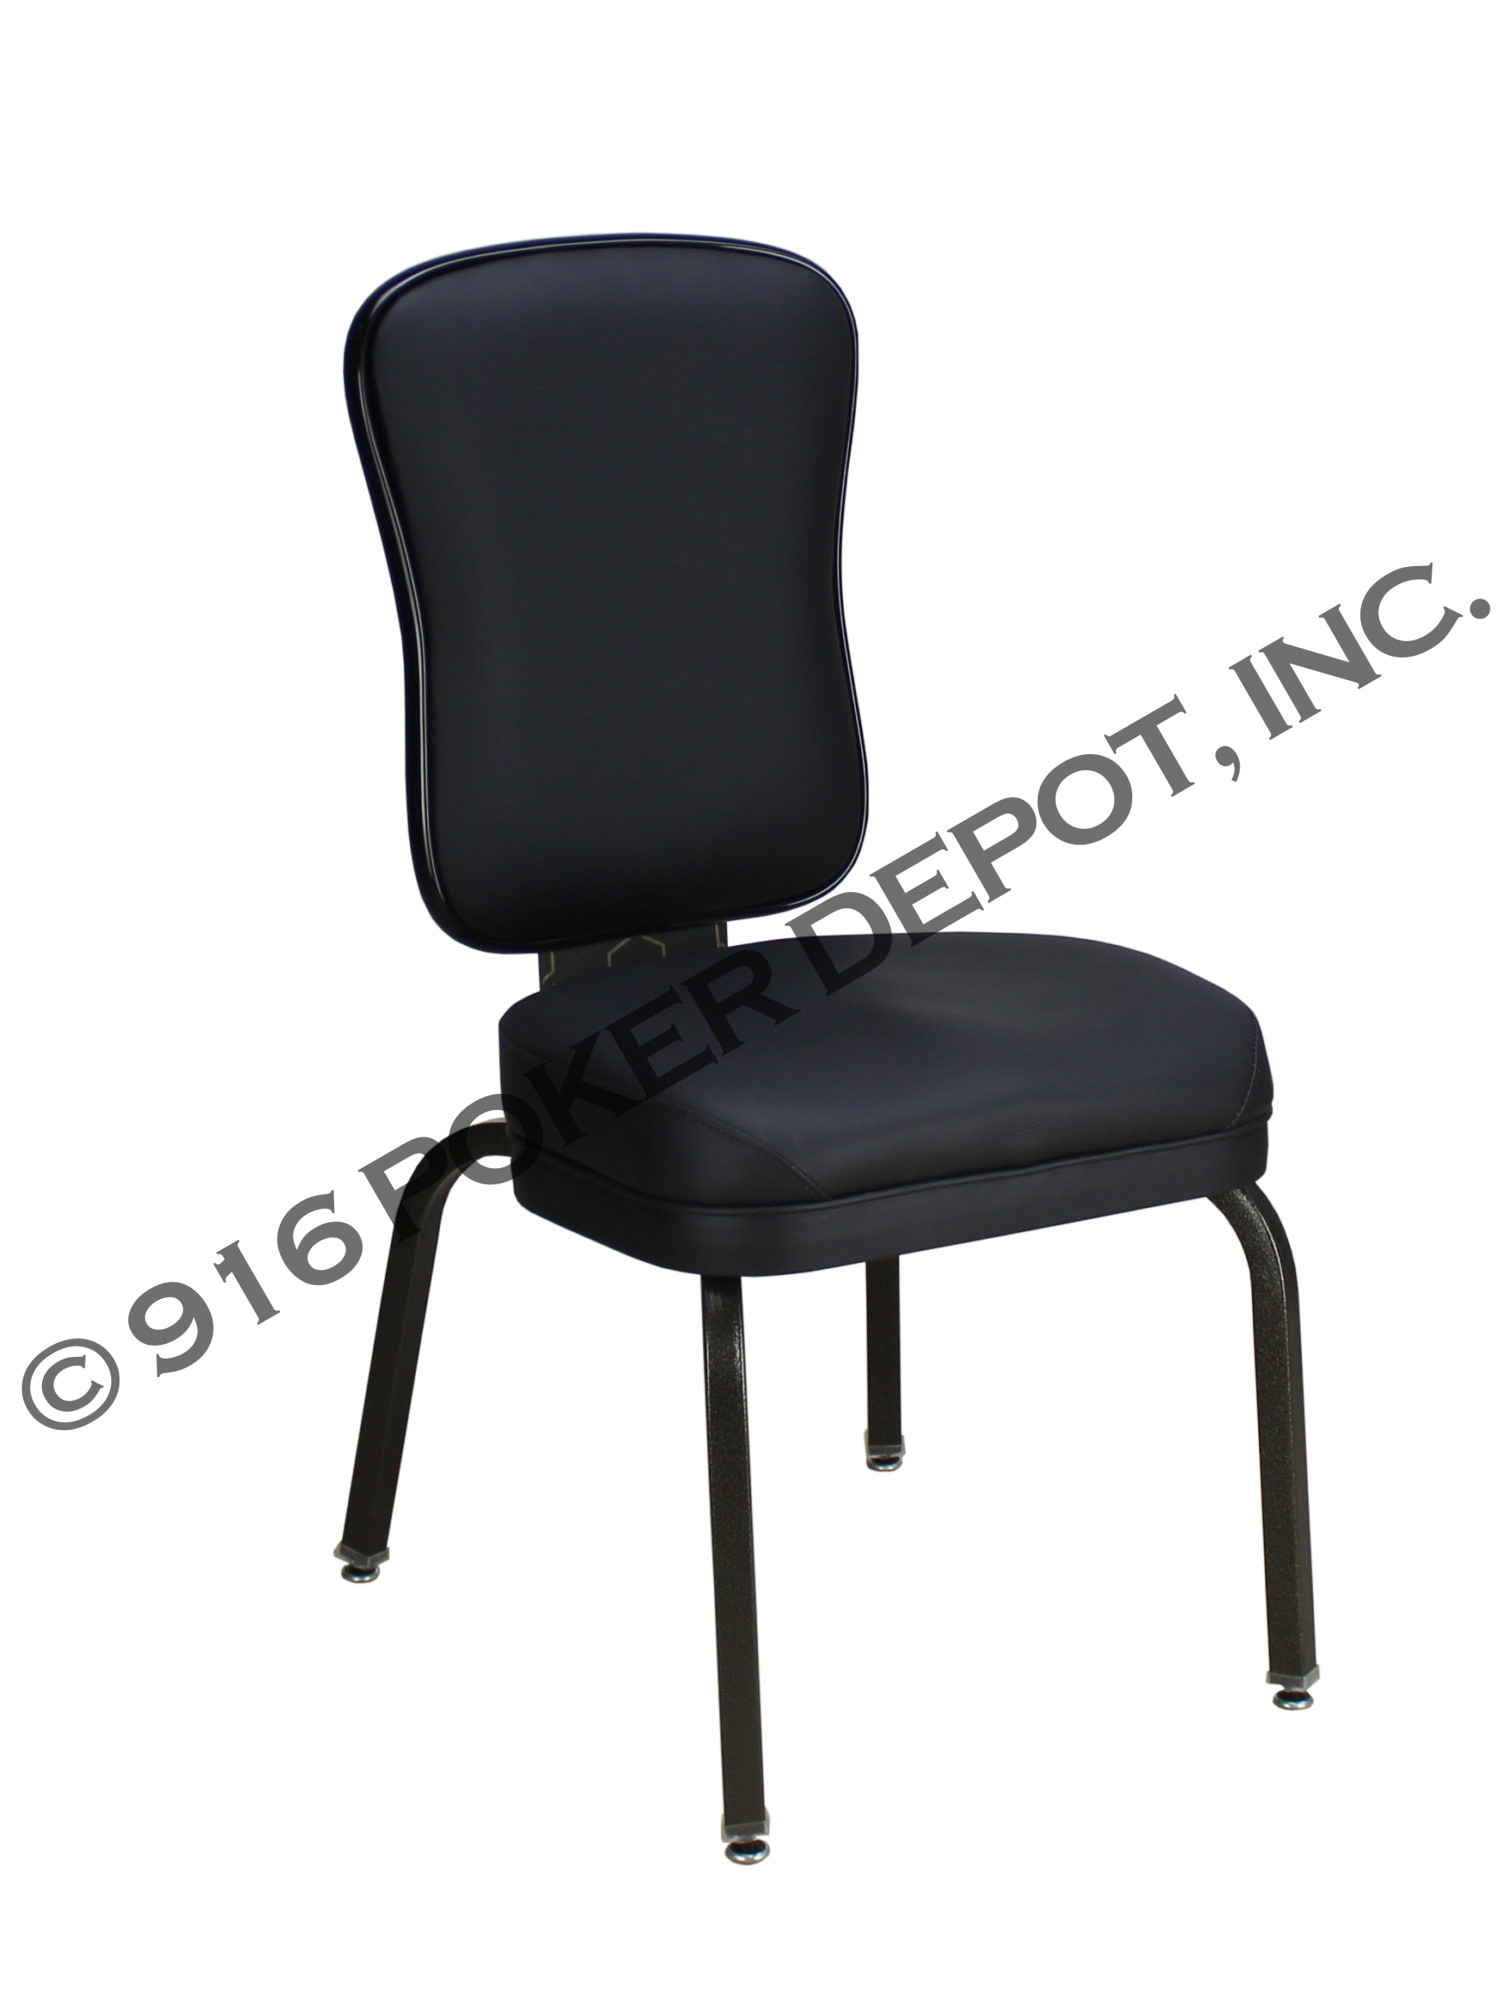 The Pocket Pair Poker Chair